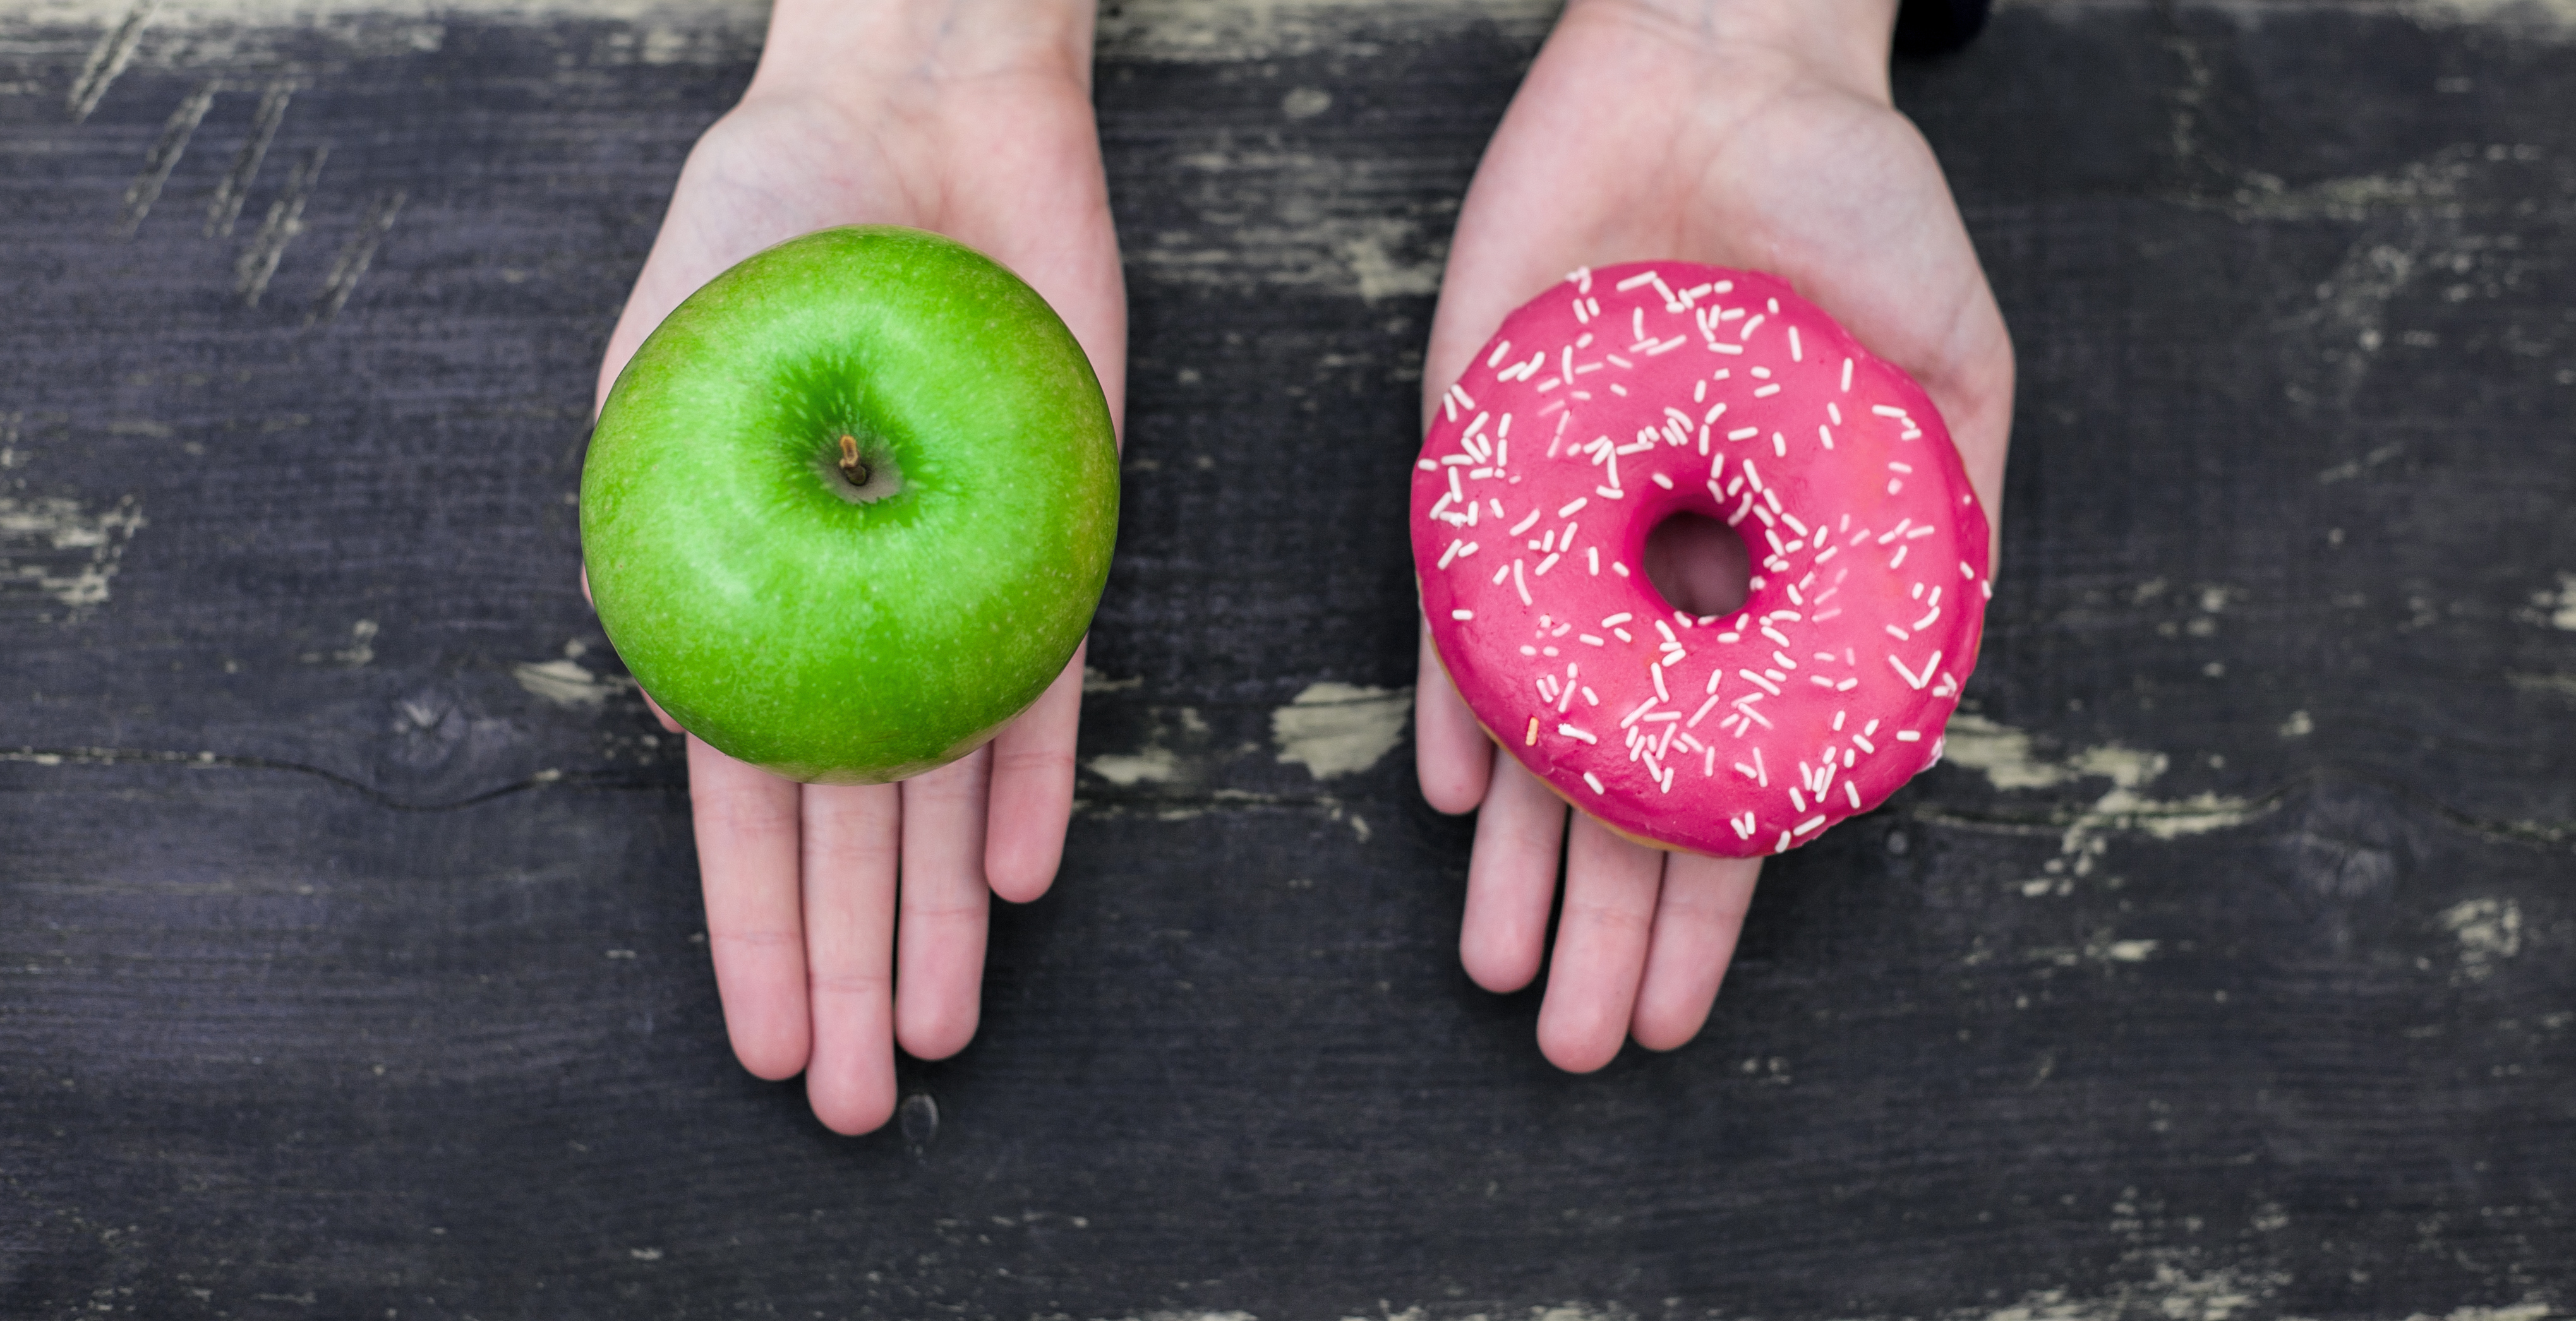 Two hands open holding an apple in one and a donut in the other.